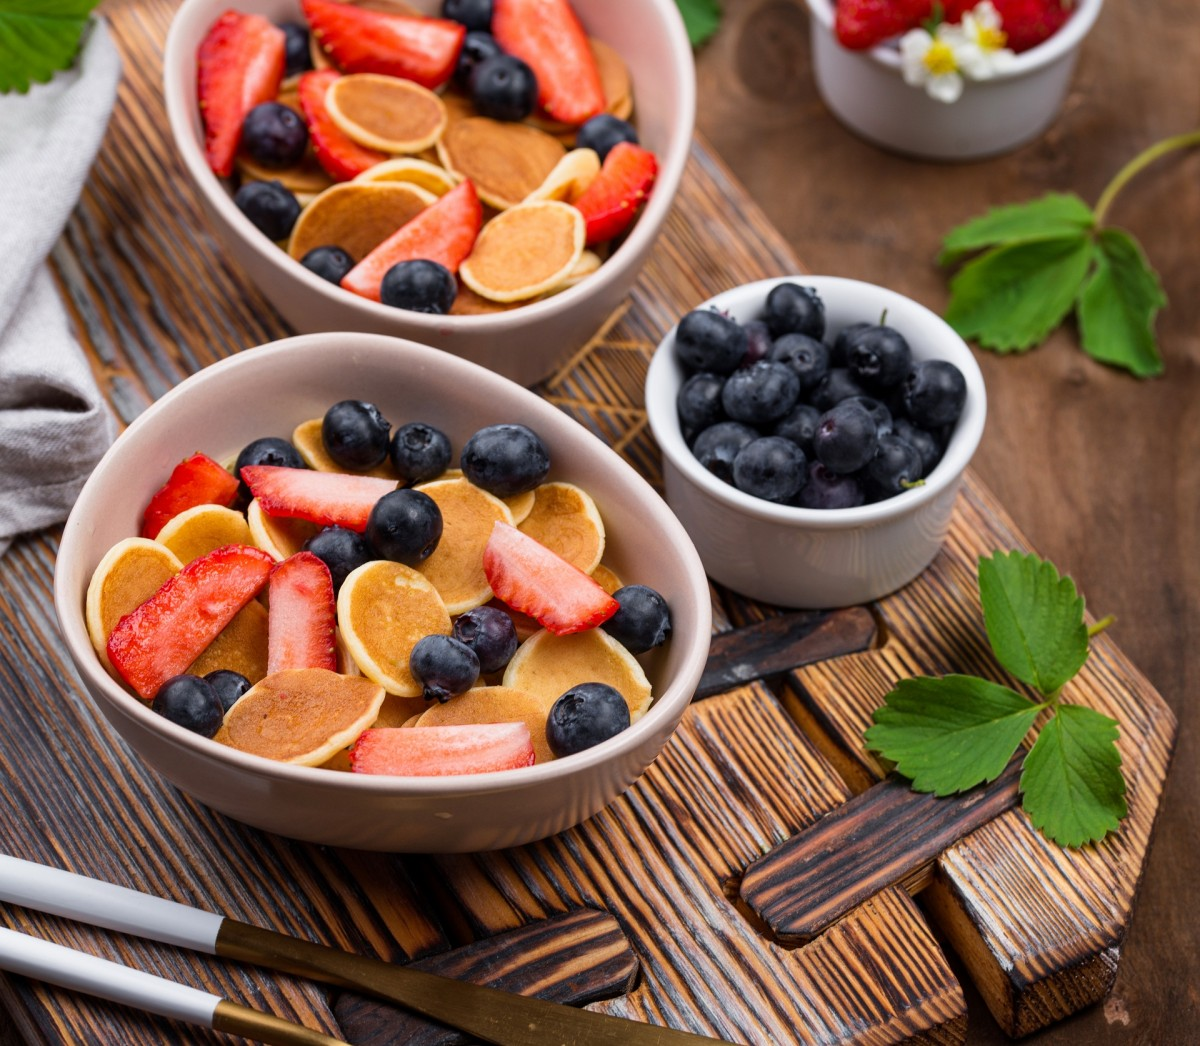 Jigsaw Puzzle Solve jigsaw puzzles online - Pancakes and berries